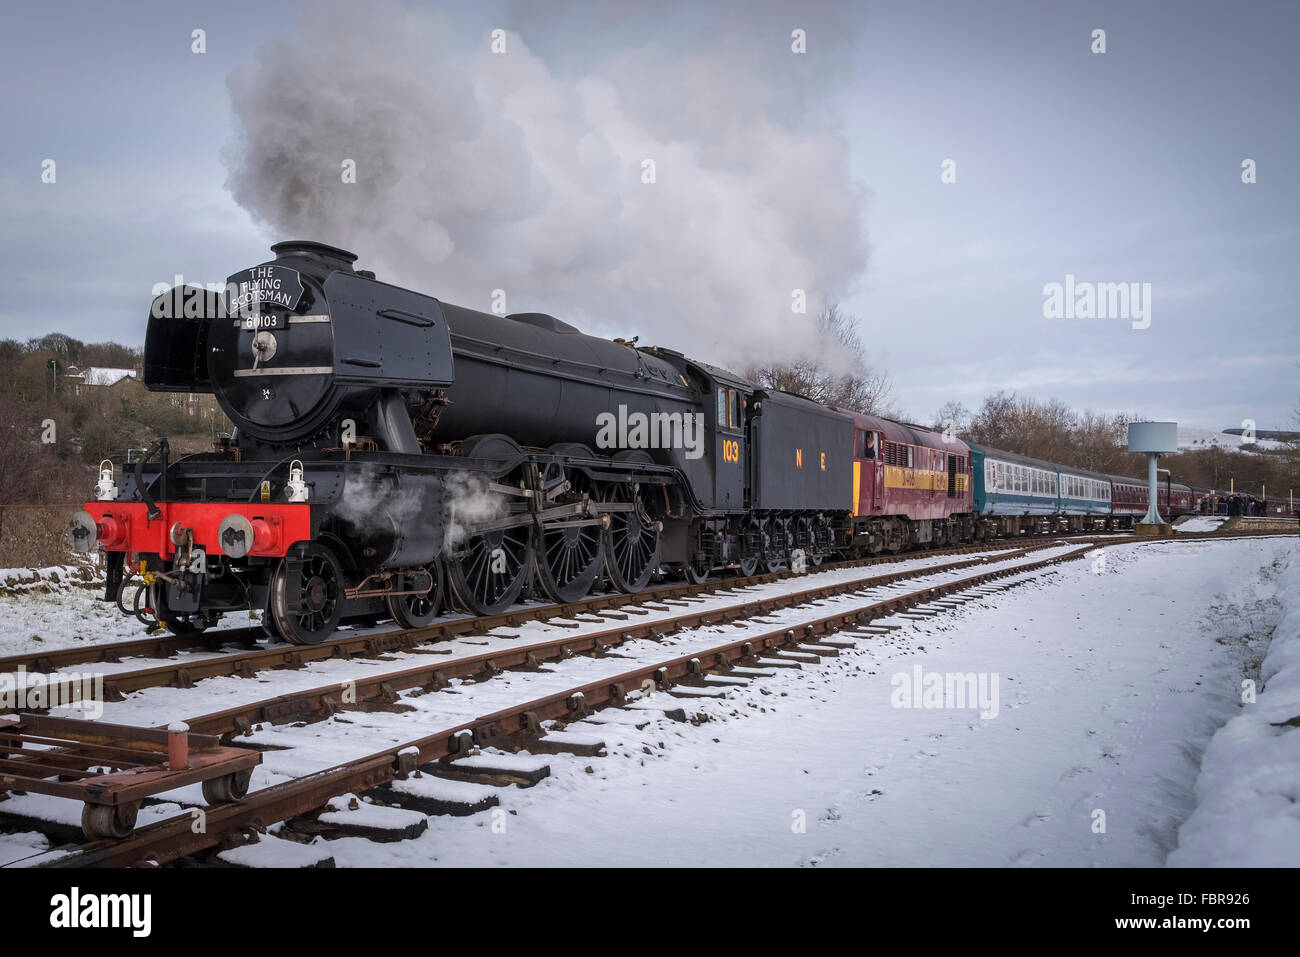 The newly restored Flying Scotsman locomotive on the East Lancashire railway. Stock Photo